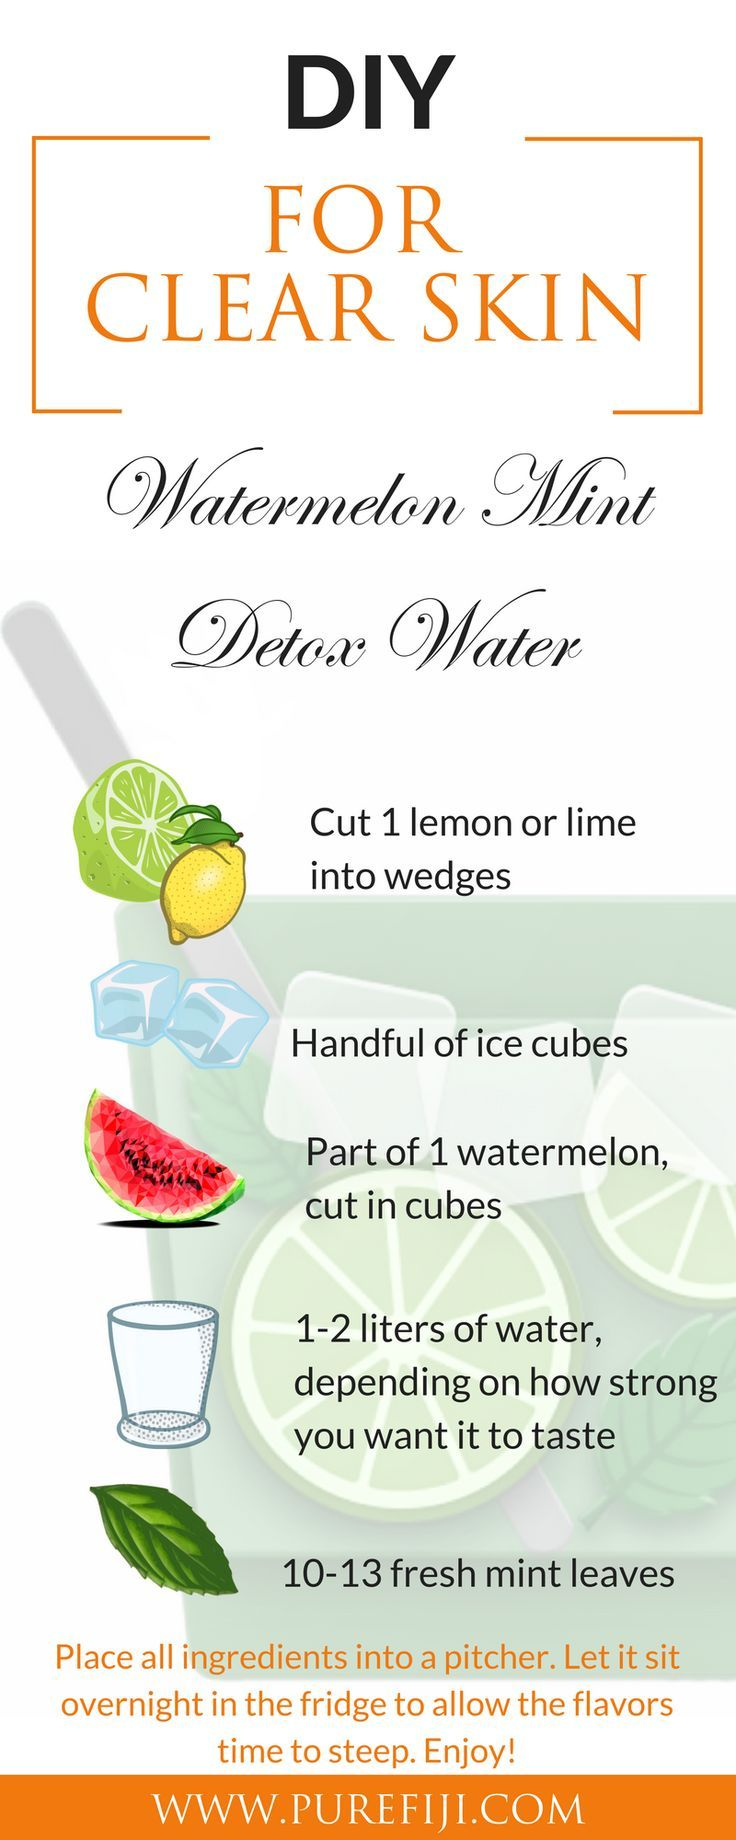 Detox Water Drink Your Way To Clear Glowing Skin Summer Skincare Routine Detox Water Healthy Detox Cleanse